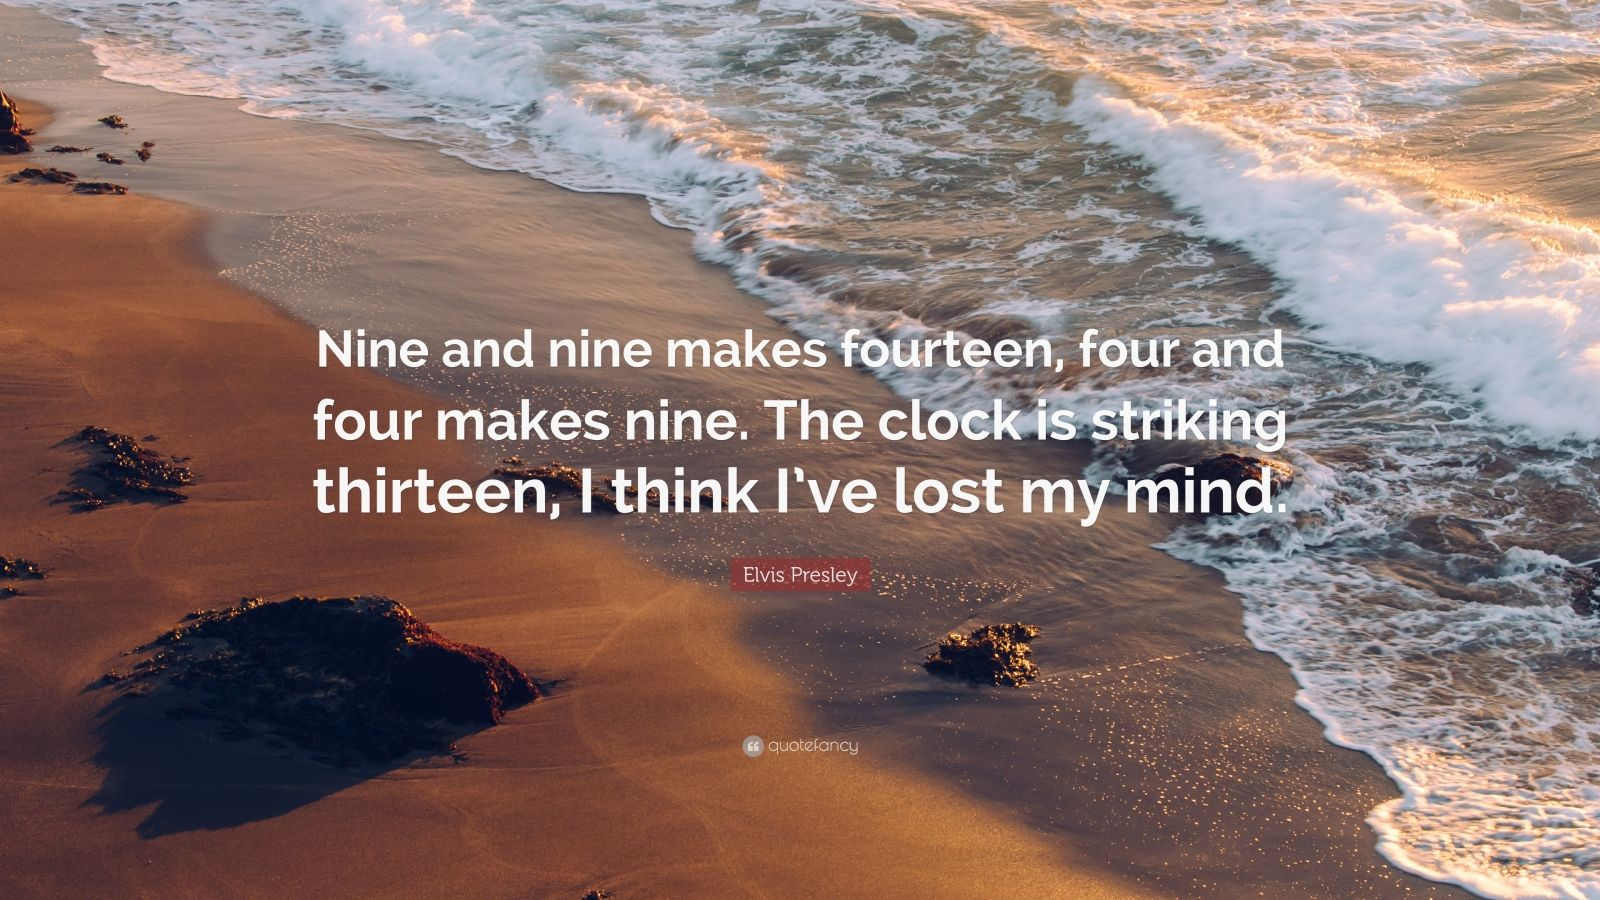 """Elvis Presley Quote: """"Nine and nine makes fourteen, four and four makes nine. The clock is striking thirteen, I think I've lost my mind."""""""